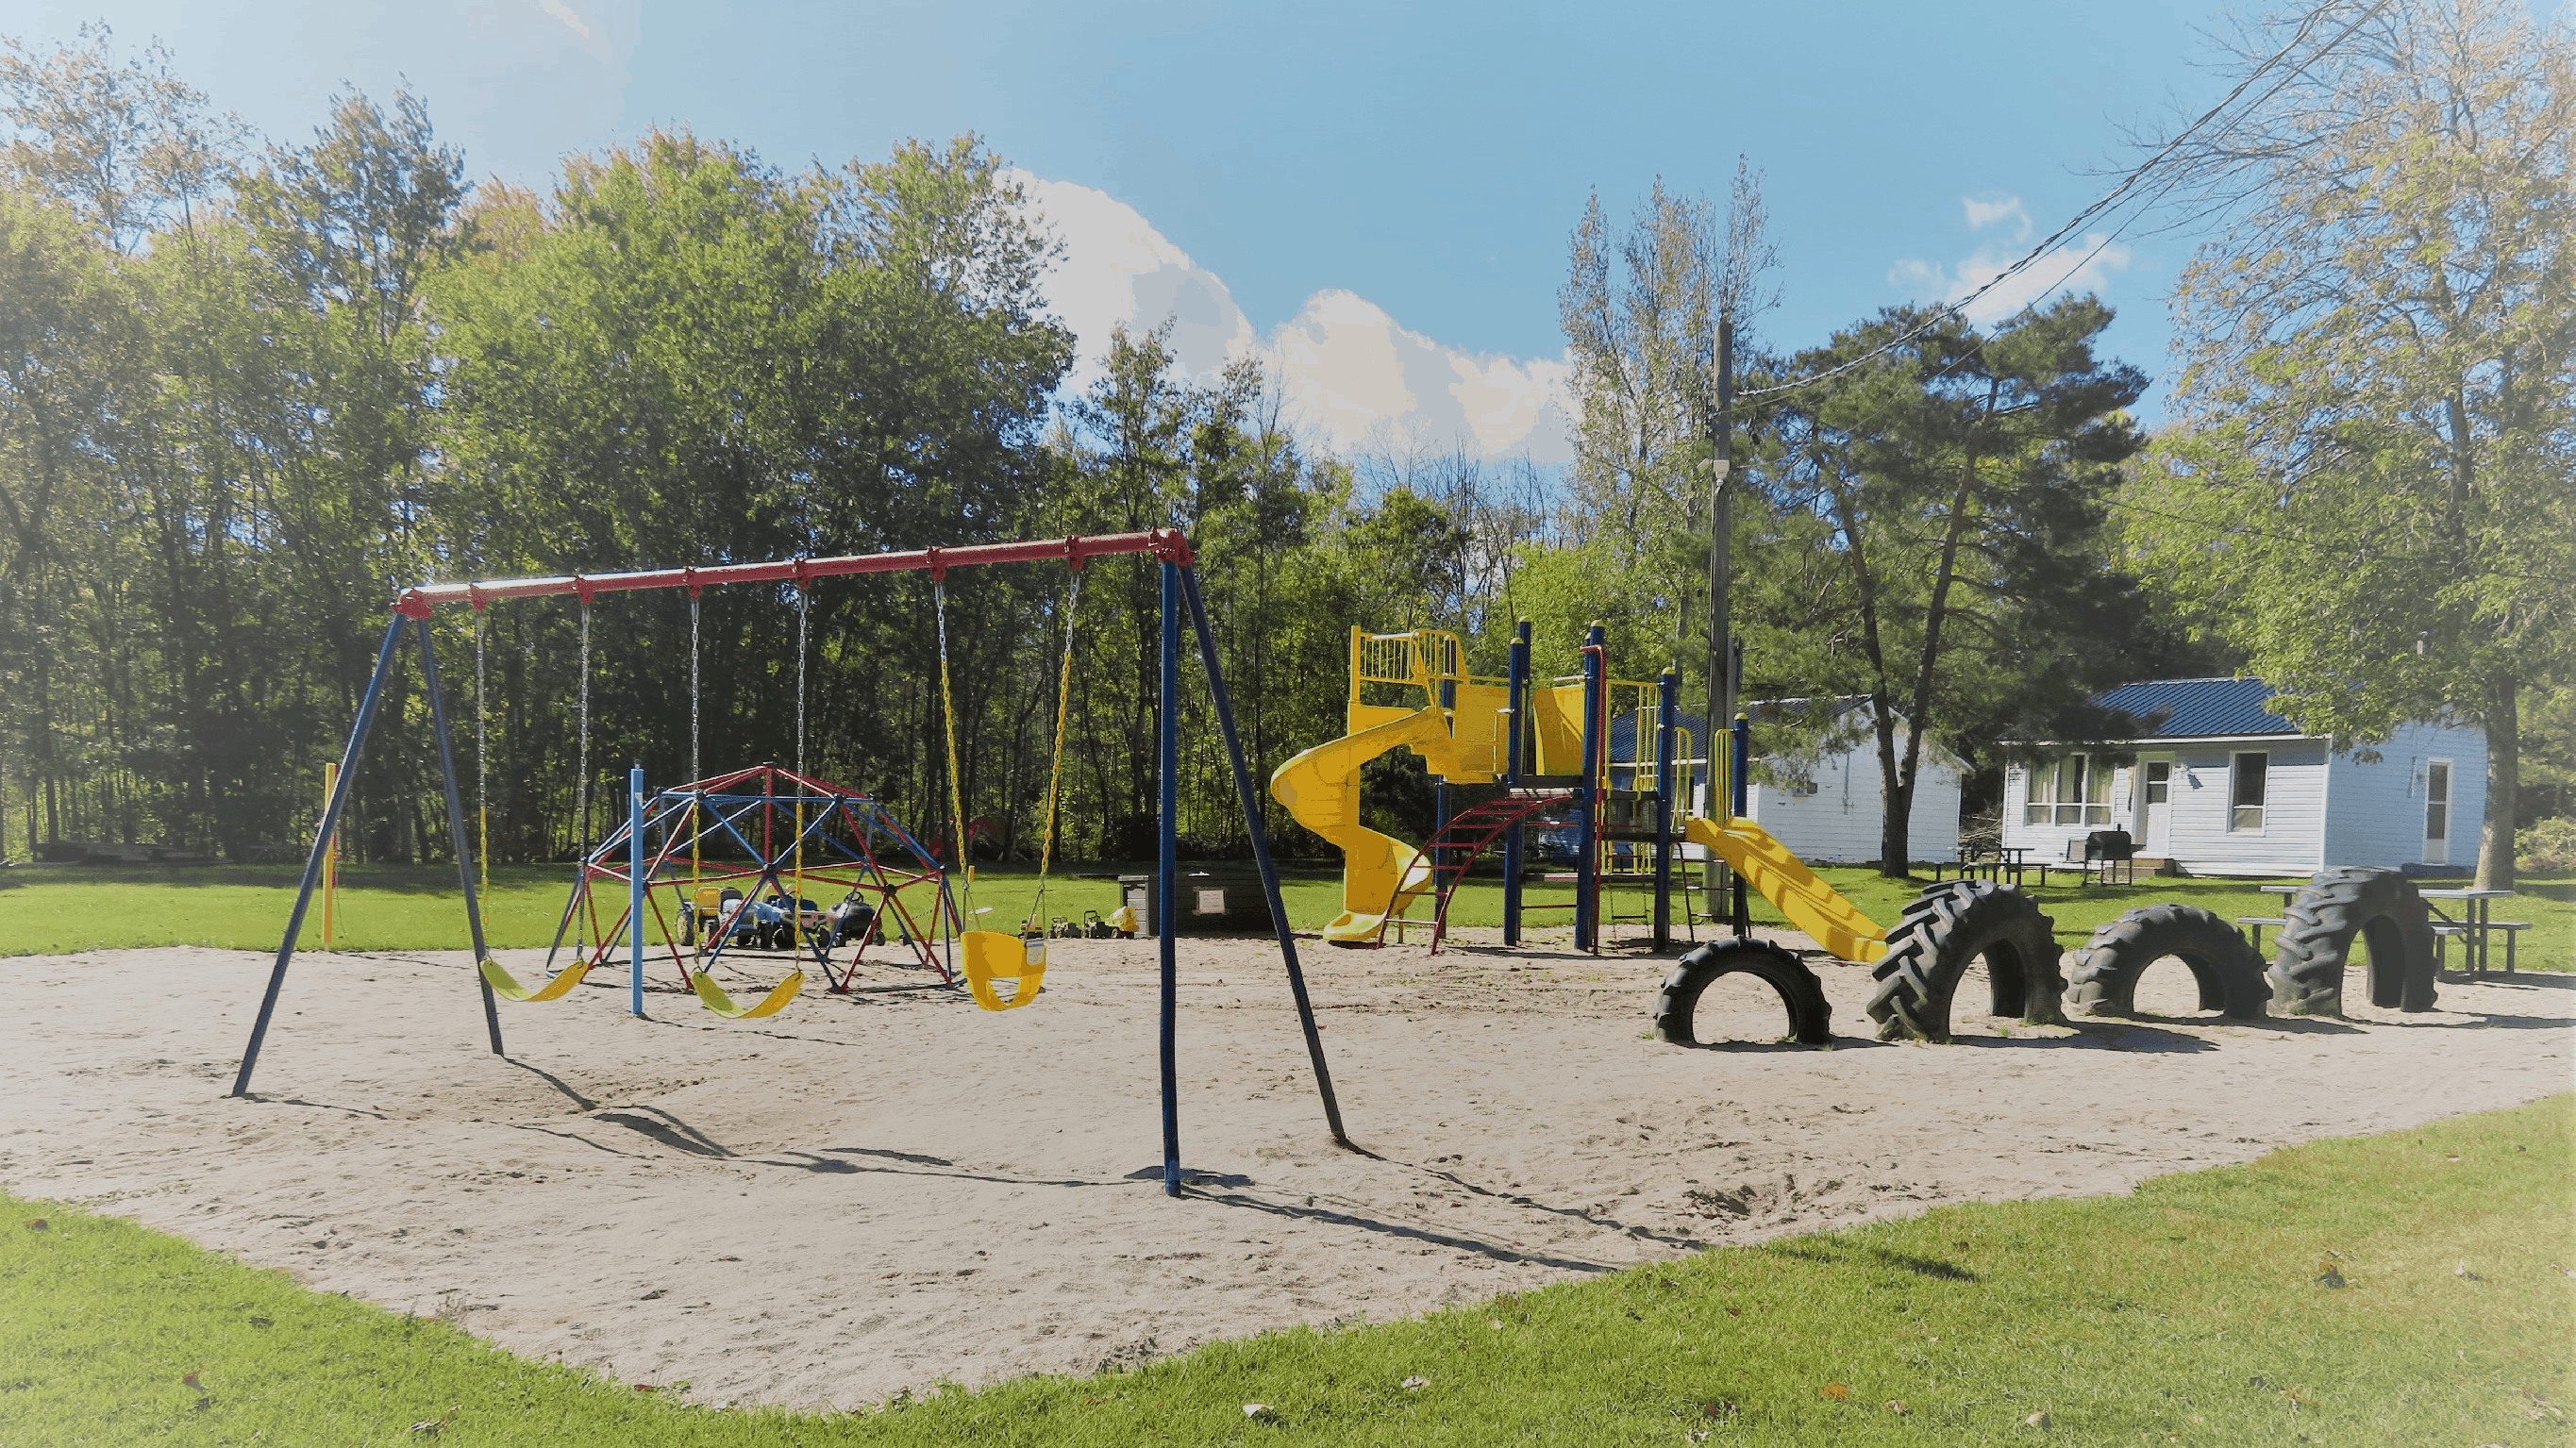 Our playground is great place for children to climb, run, play and have fun.